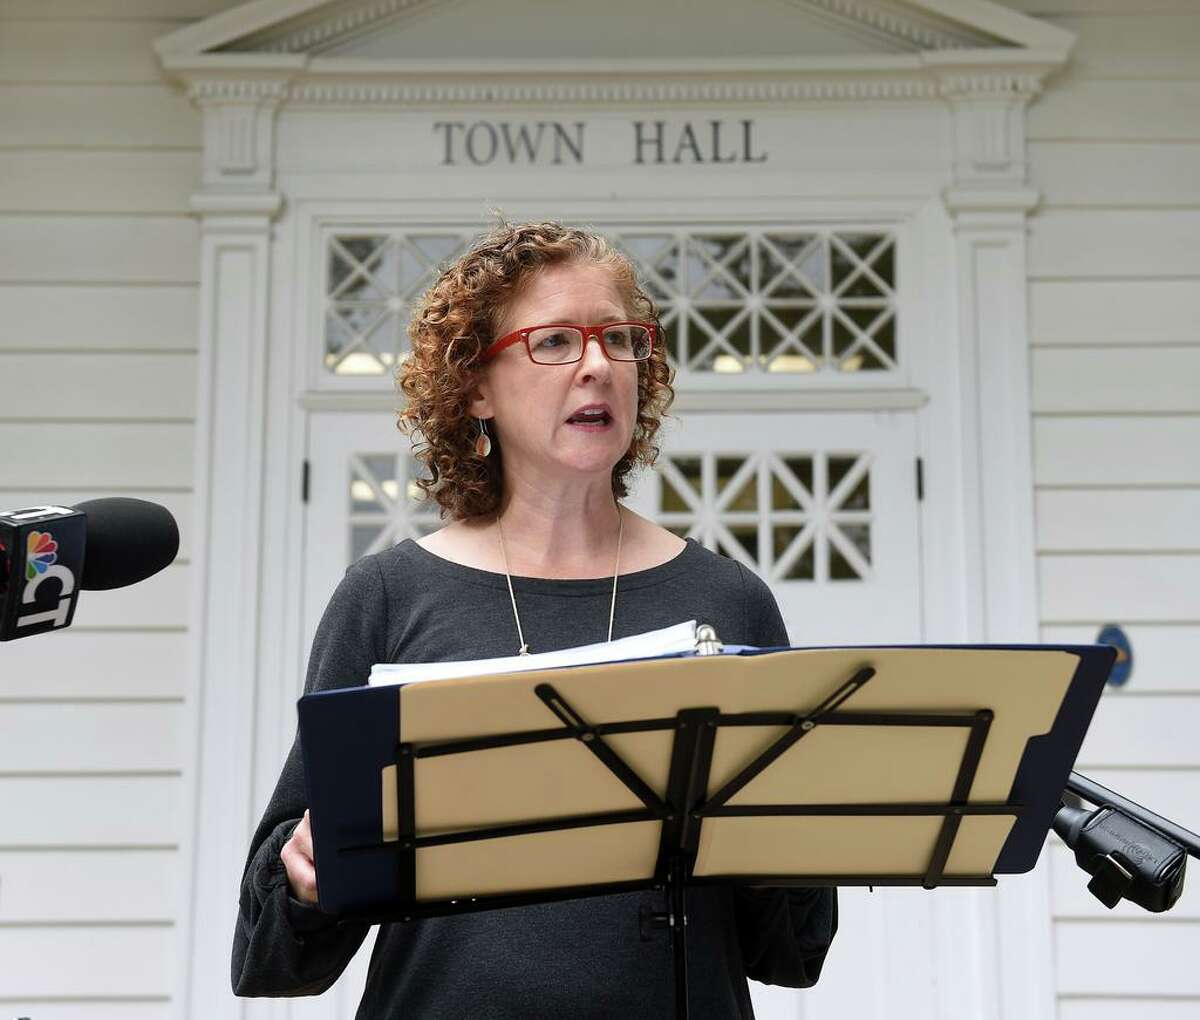 In this file photo, Erin Boggs, executive director of Open Communities Alliance, speaks in front of Woodbridge Town Hall on Sept. 29, 2020 concerning the organization's challenge to the town's zoning laws restricting multi-family developments of 3 or more units.